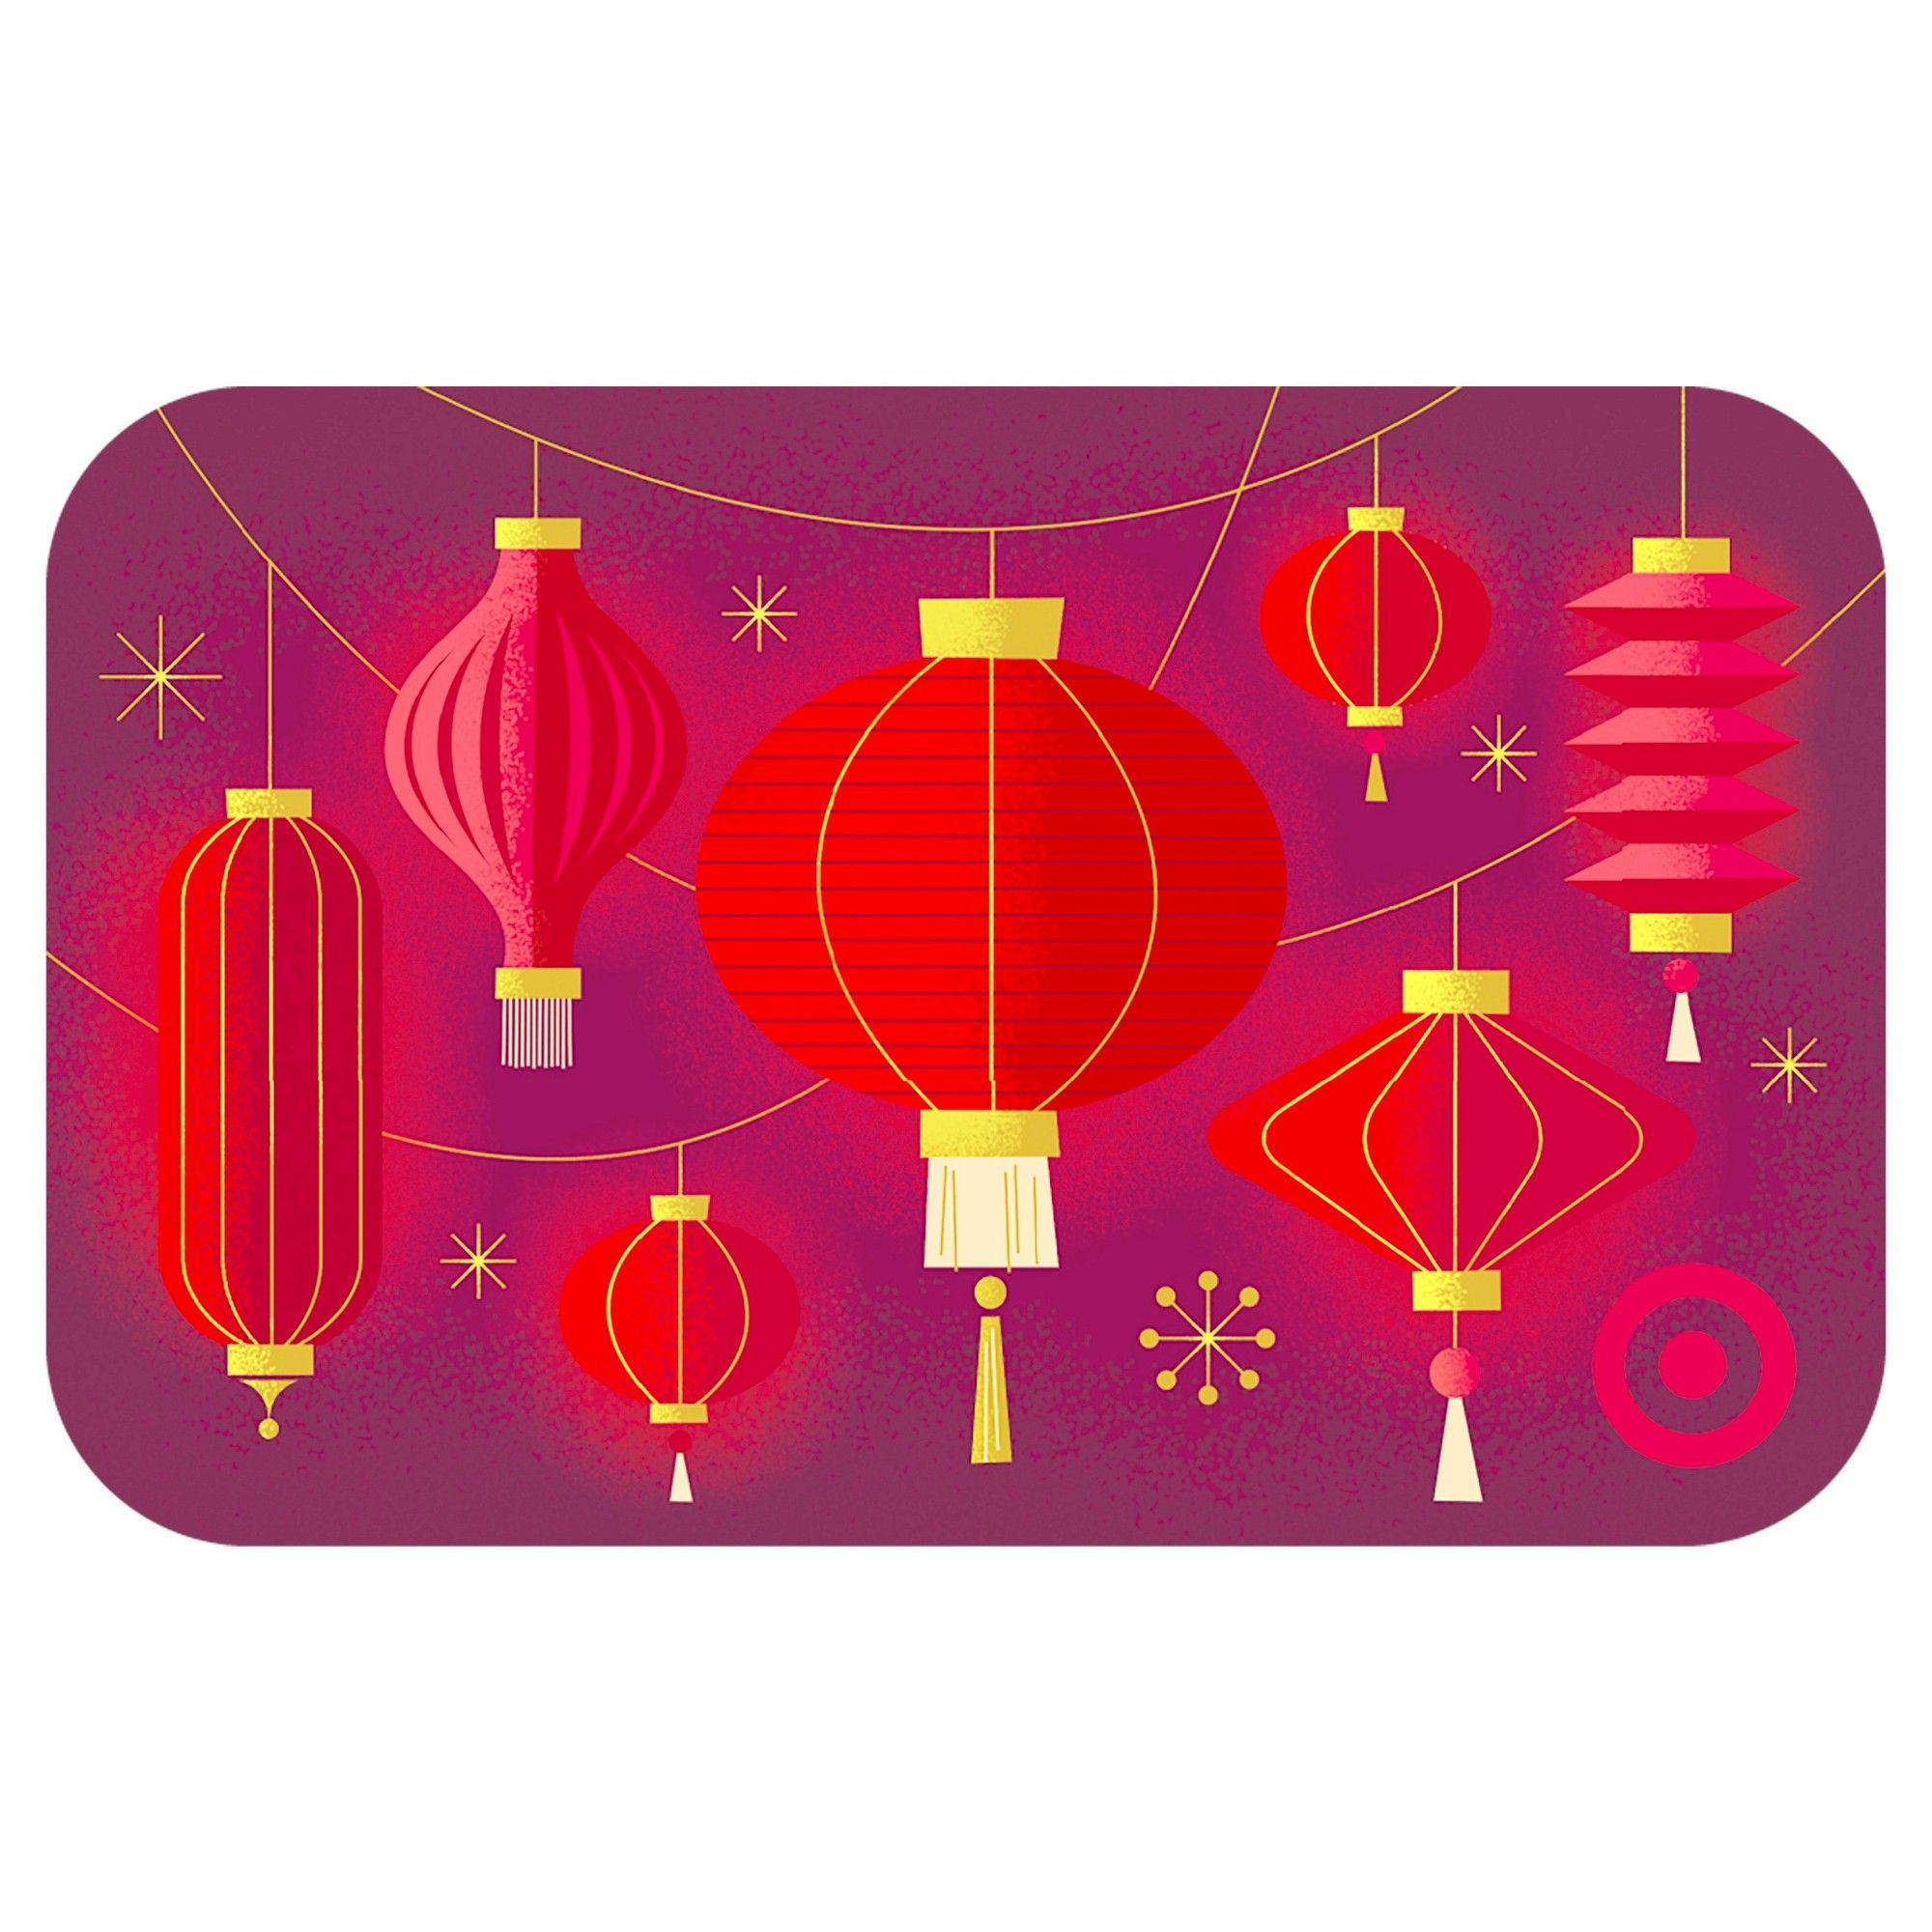 Lunar New Year 2017 Gift Card $1000 (With images) | Lunar ...